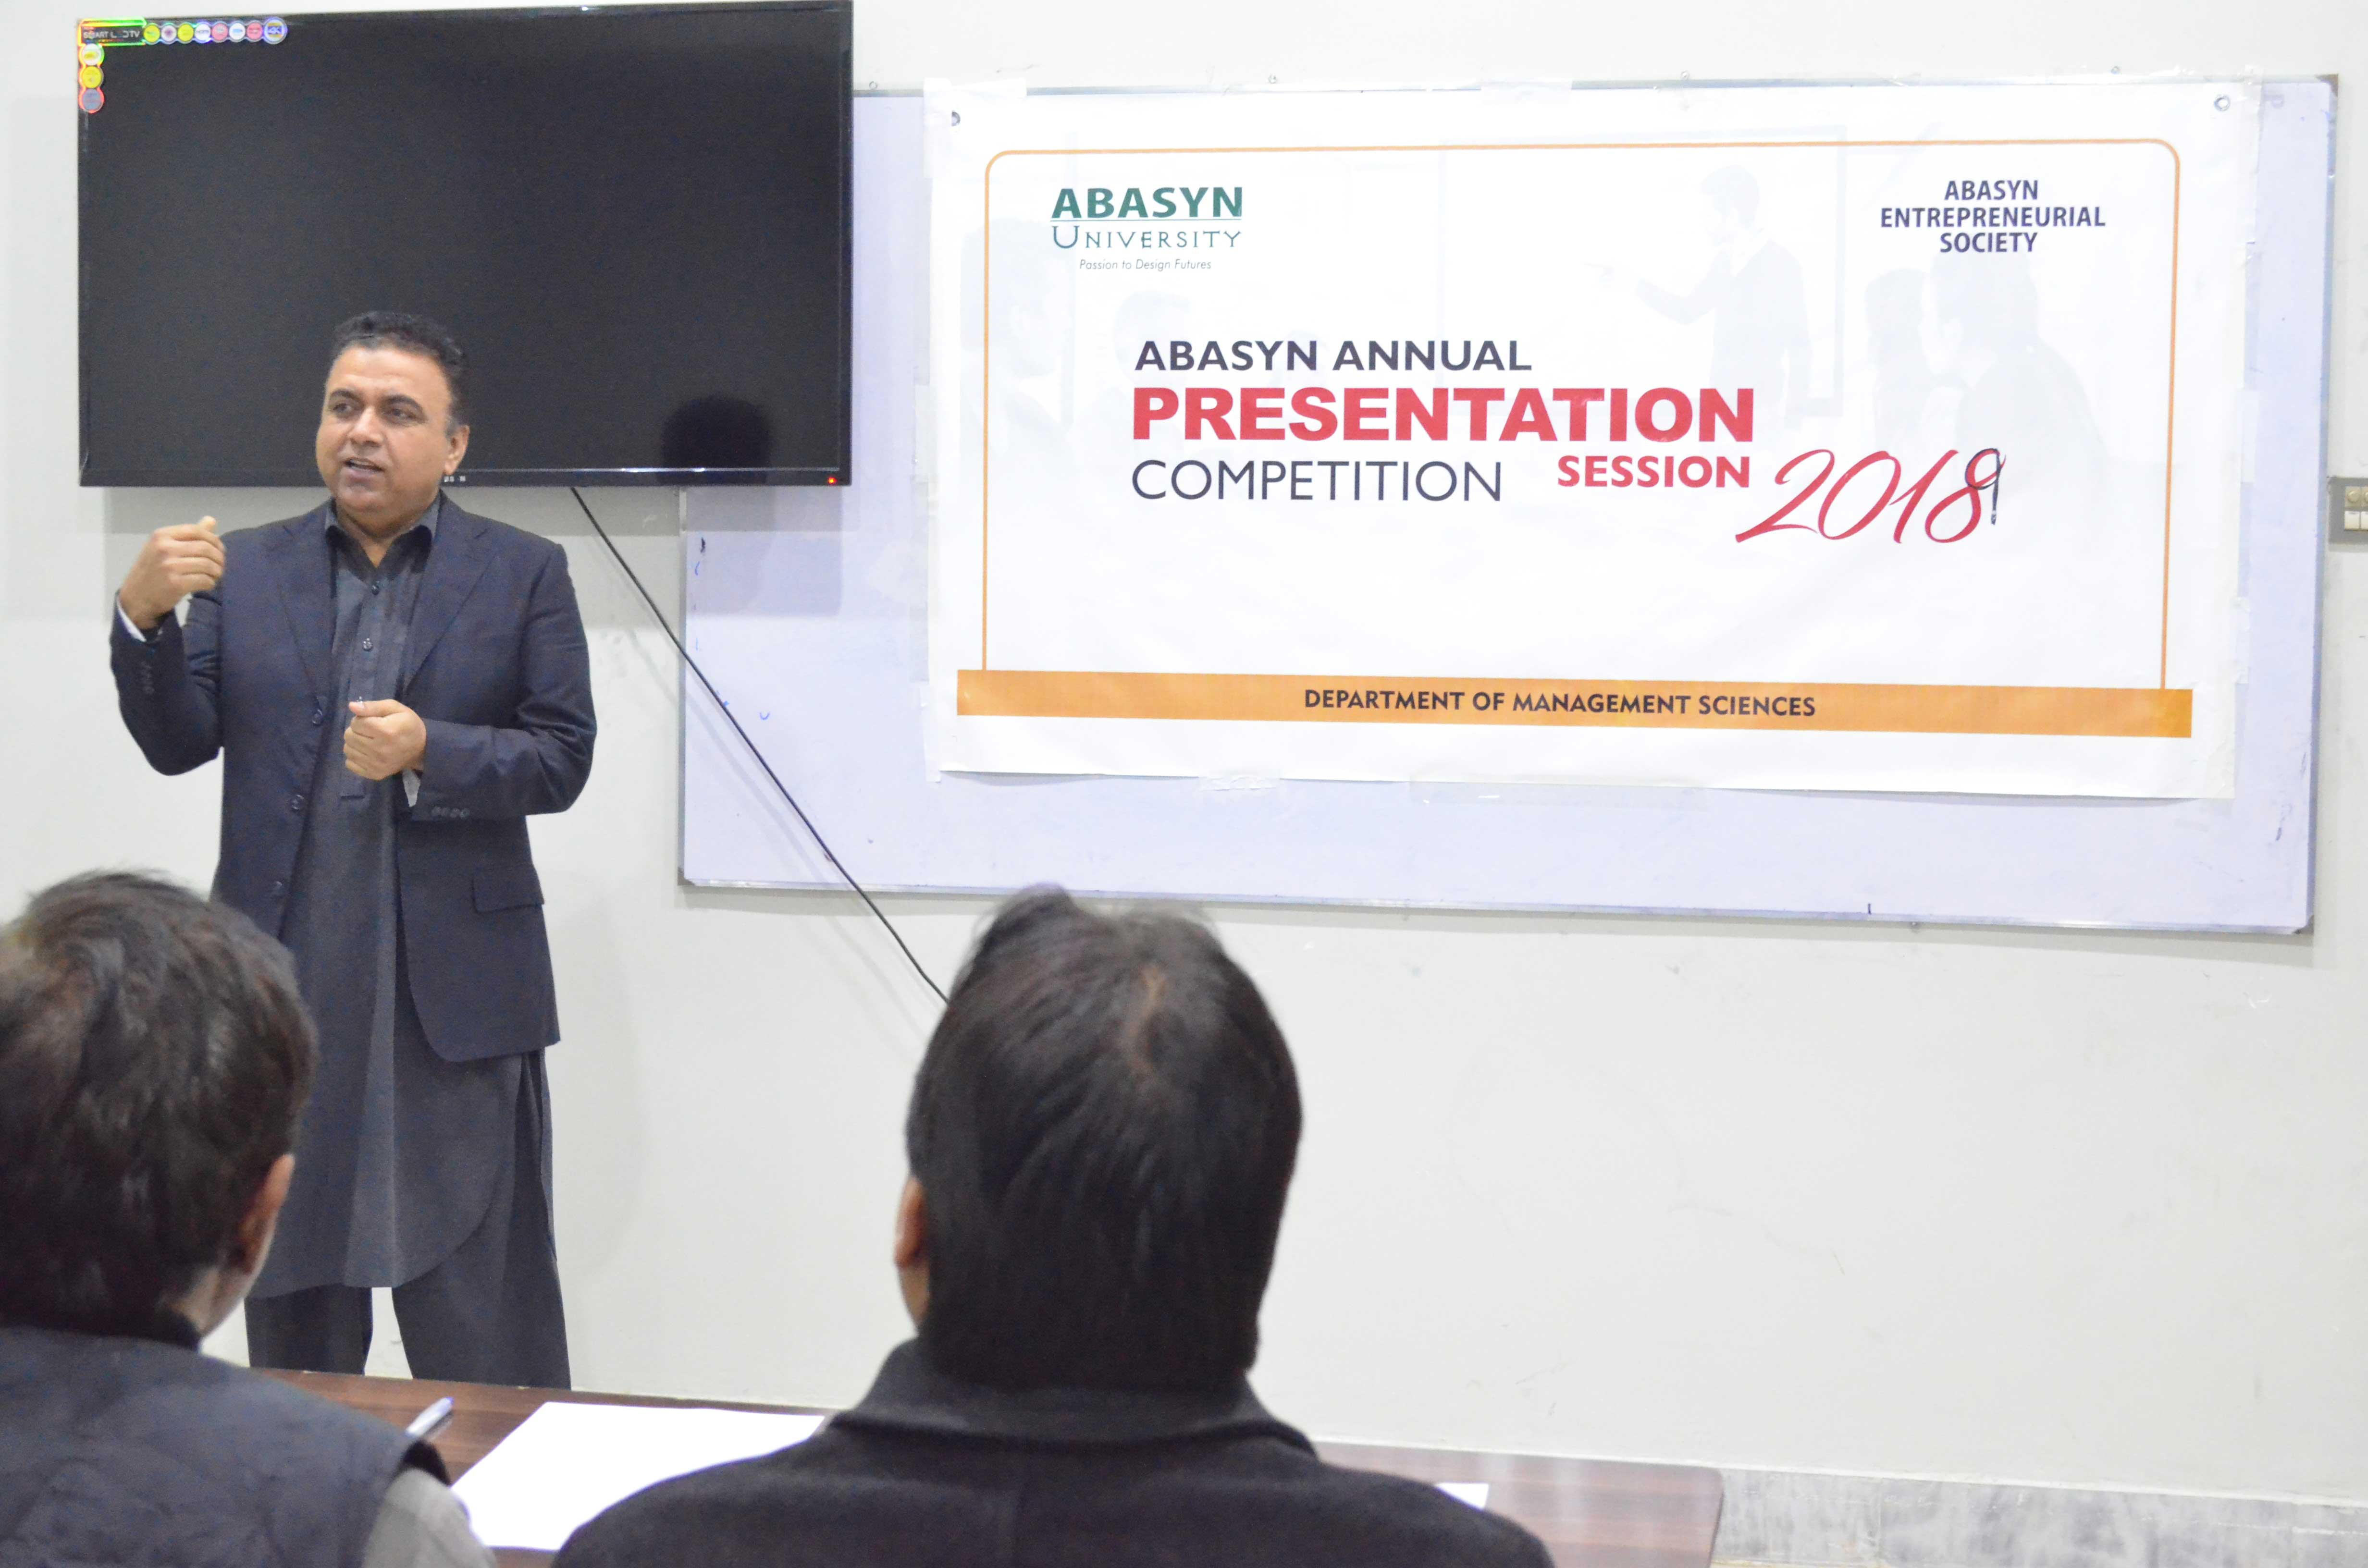 Abasyn Annual Presentation competition 2018